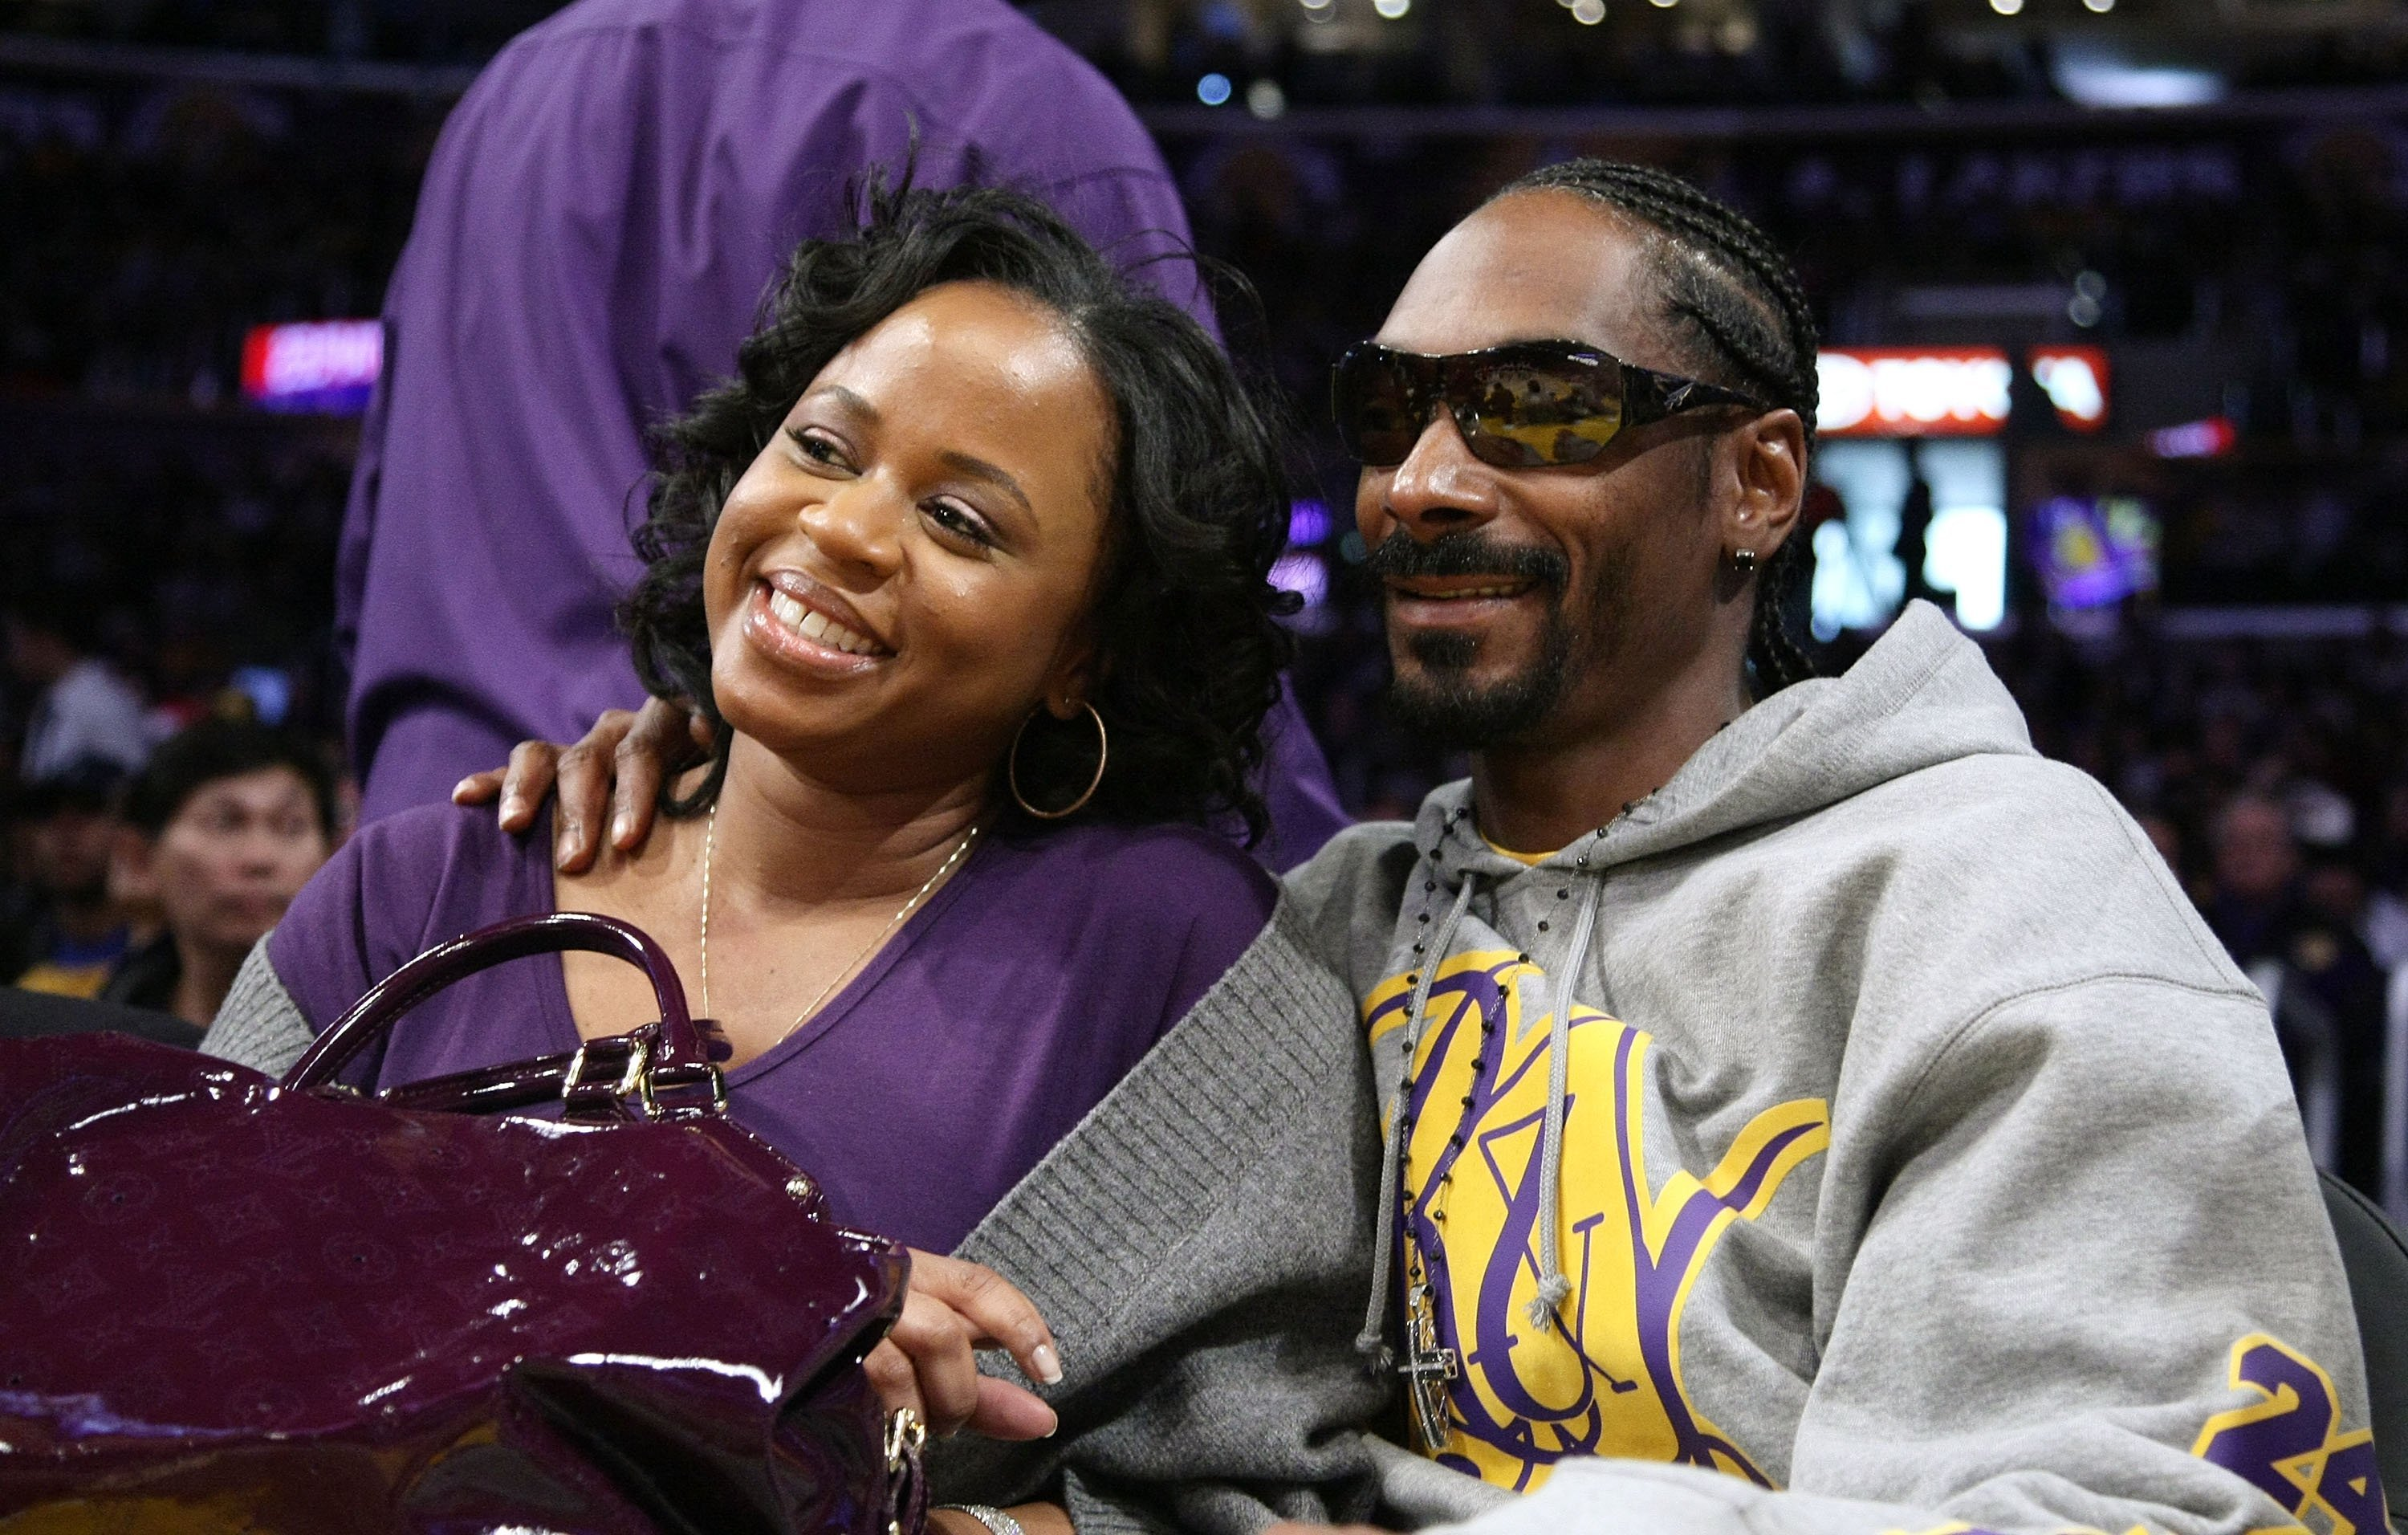 Snoop Dogg & Shante Broadus at a basketball game in California on Dec. 25, 2008 | Photo: Getty Images